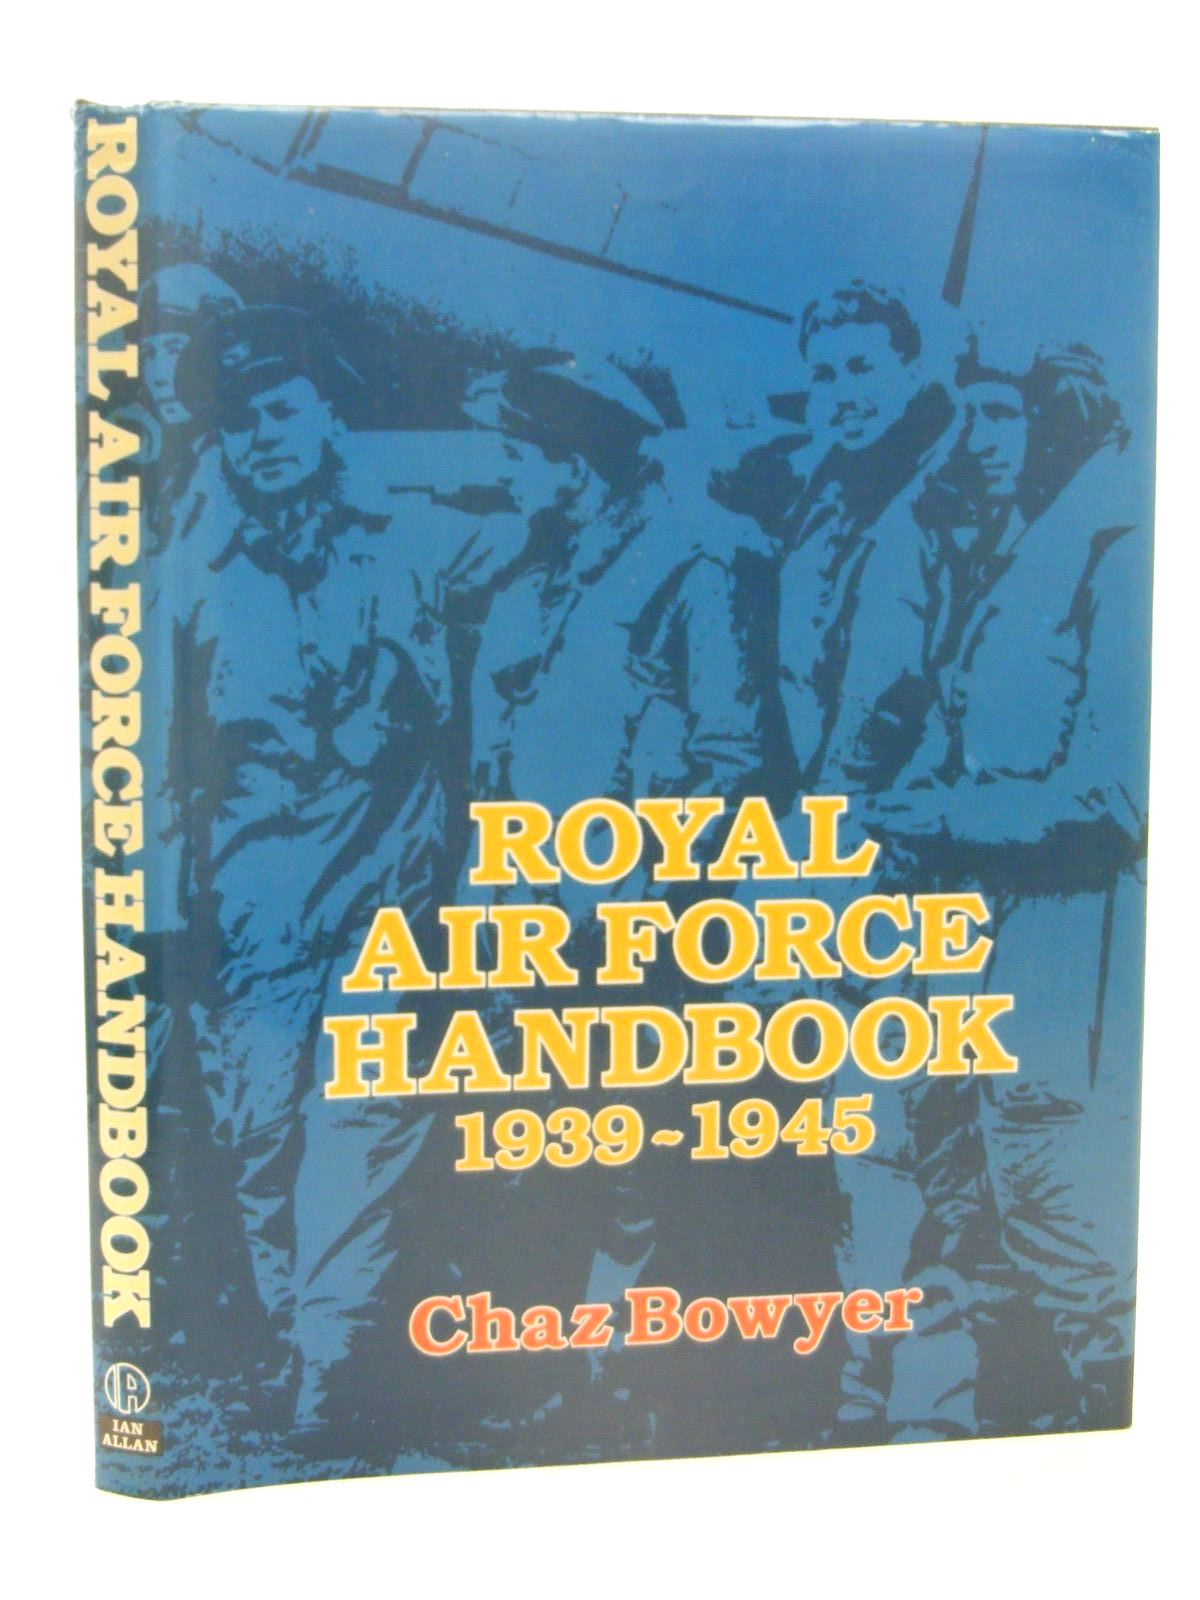 Photo of ROYAL AIR FORCE HANDBOOK 1939-1945 written by Bowyer, Chaz published by Ian Allan Ltd. (STOCK CODE: 1610262)  for sale by Stella & Rose's Books